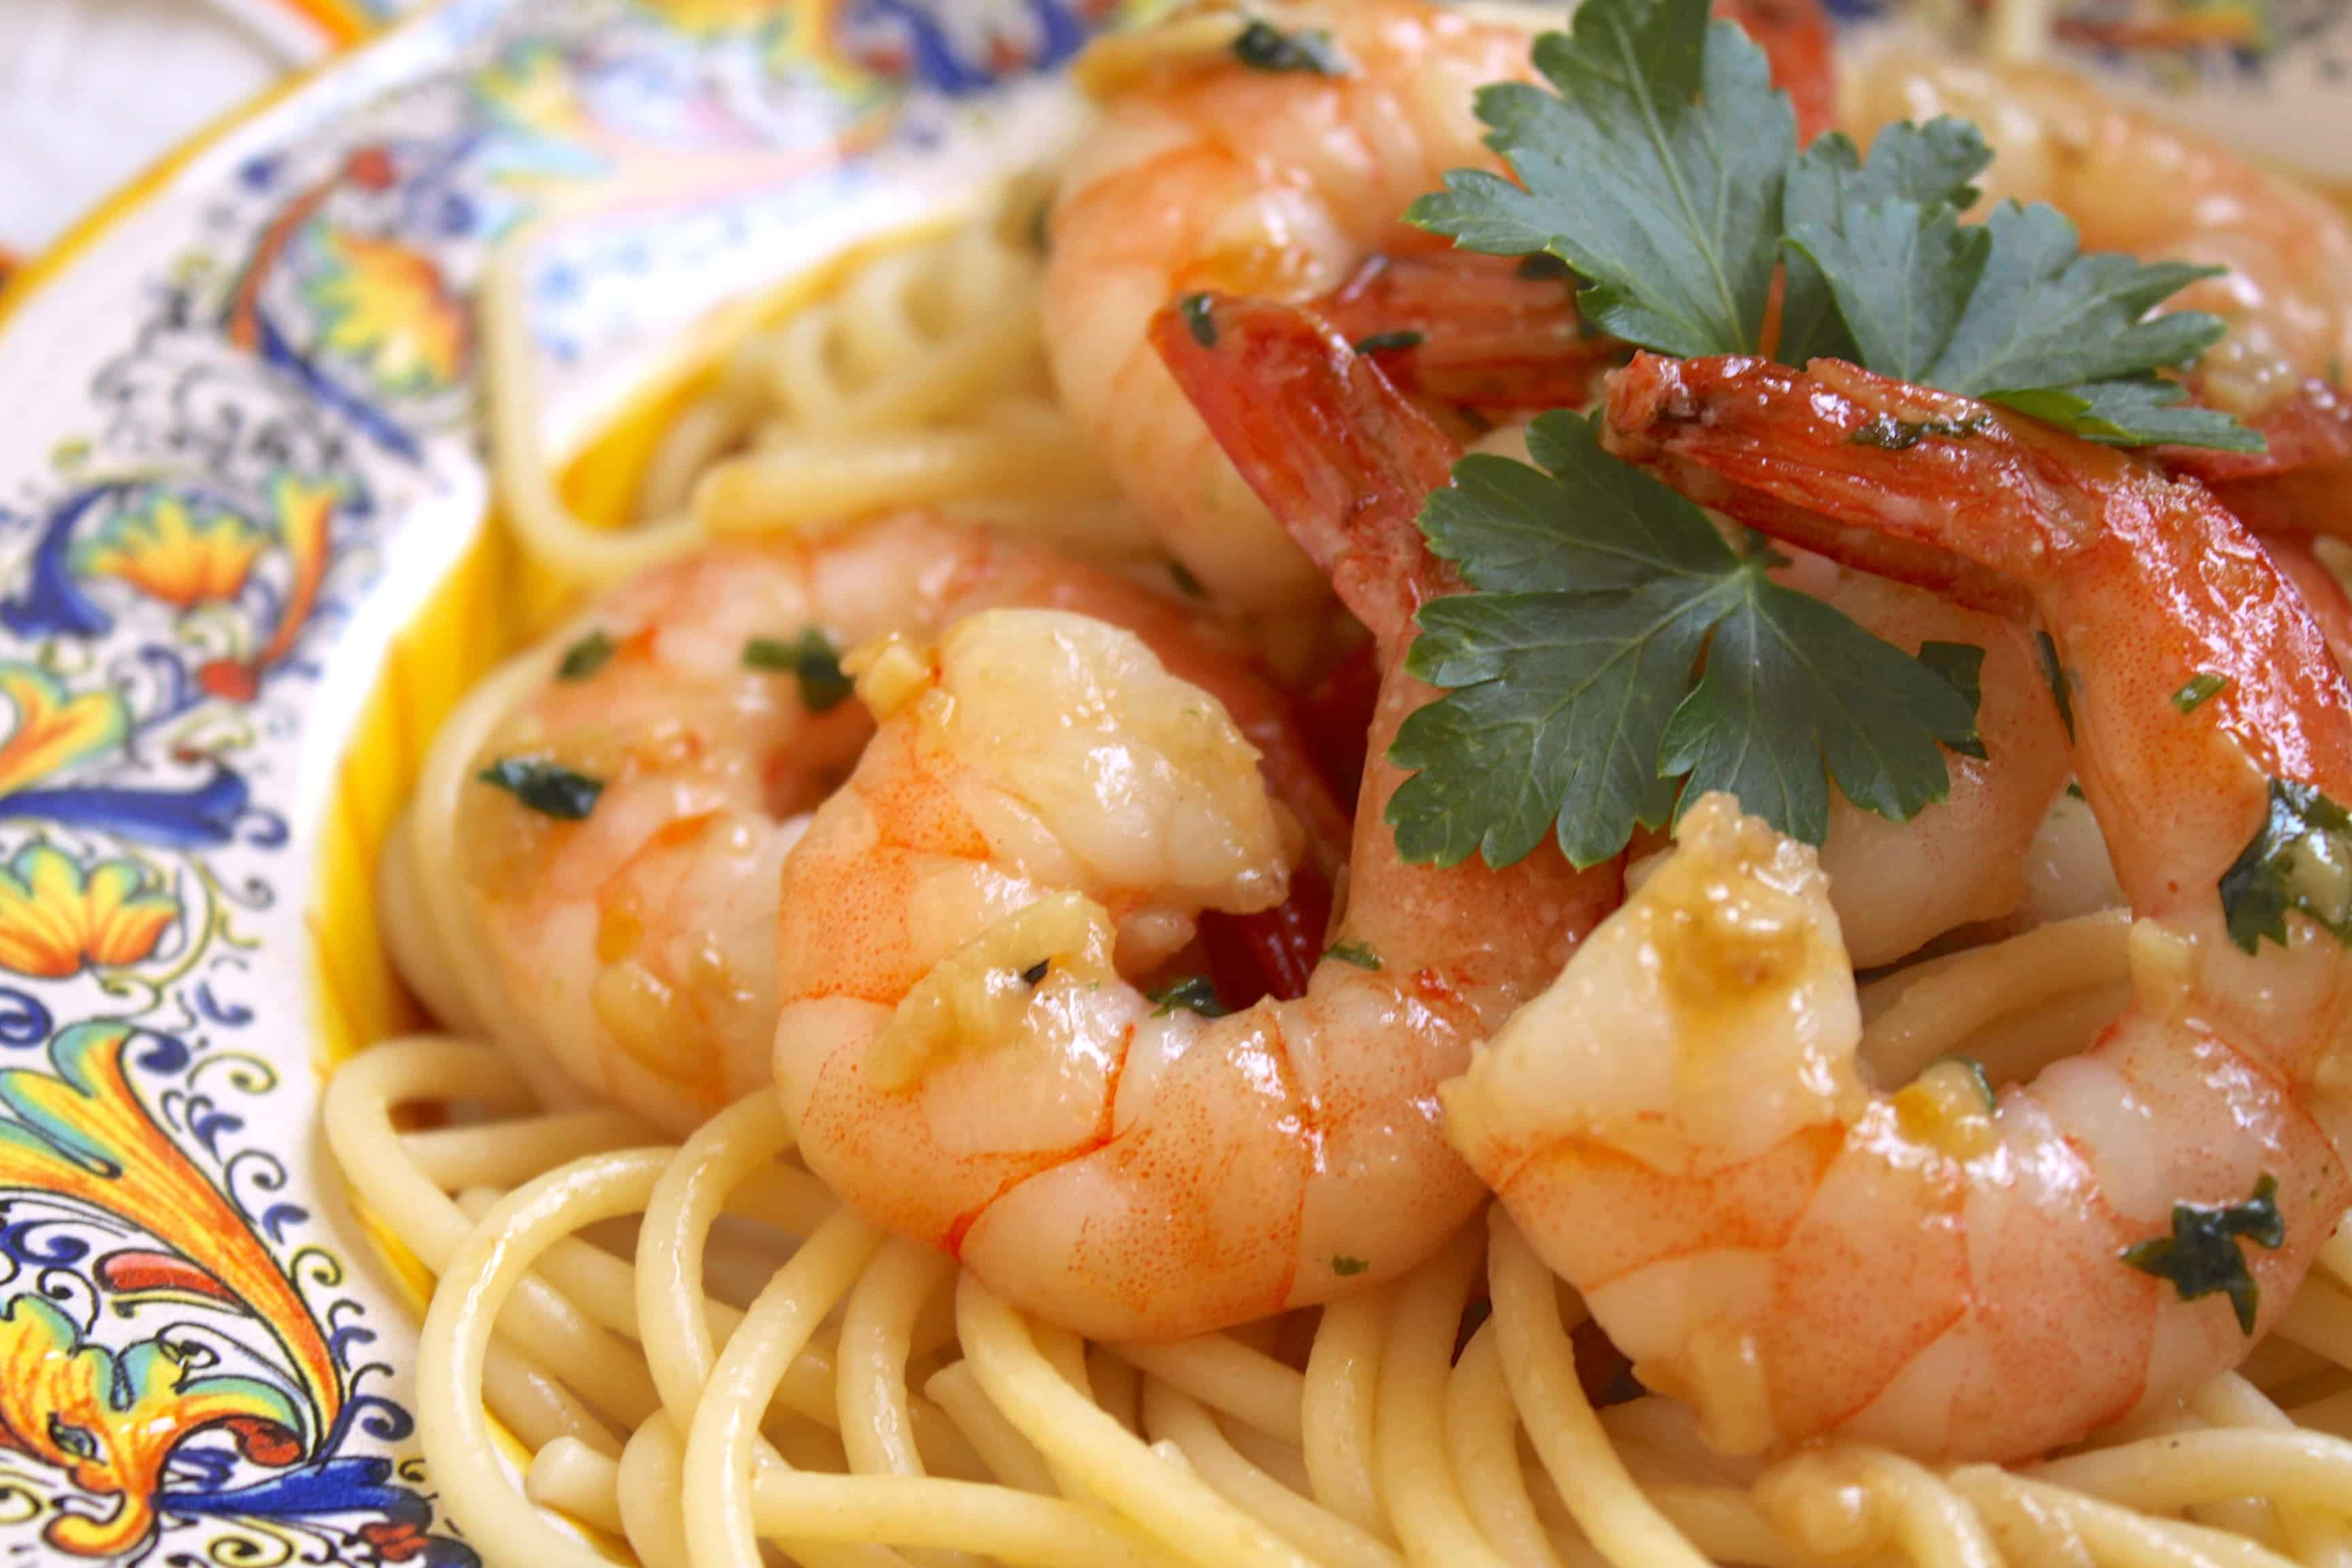 Simple Garlic & Butter Shrimp with Spaghetti (Shrimp Scampi) - Christina's Cucina